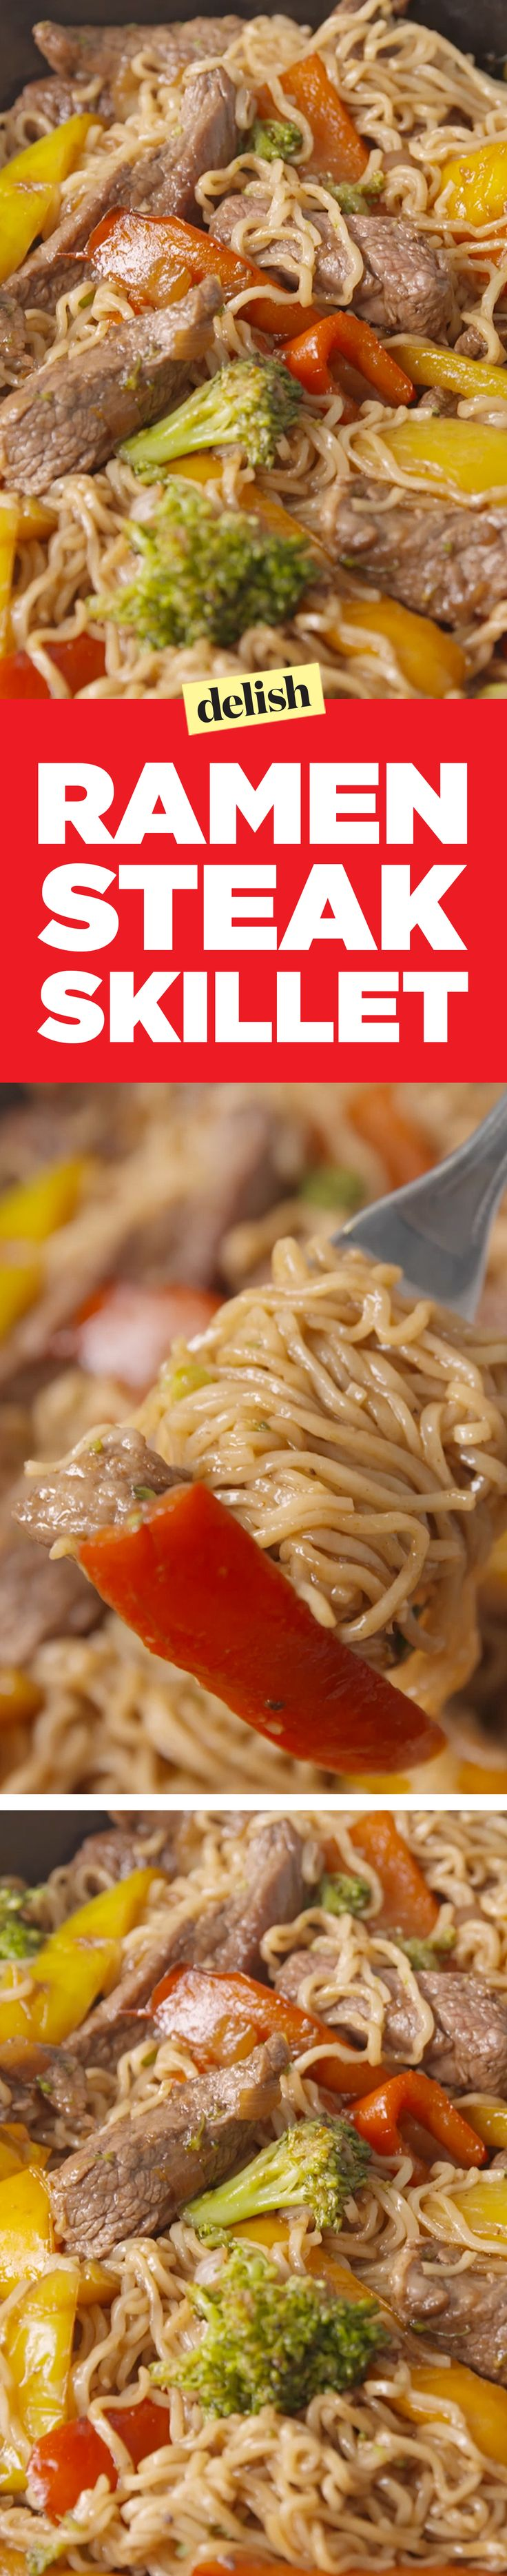 Ramen steak skillet is the best way to upgrade your ramen noodles. Get the recipe on Delish.com.